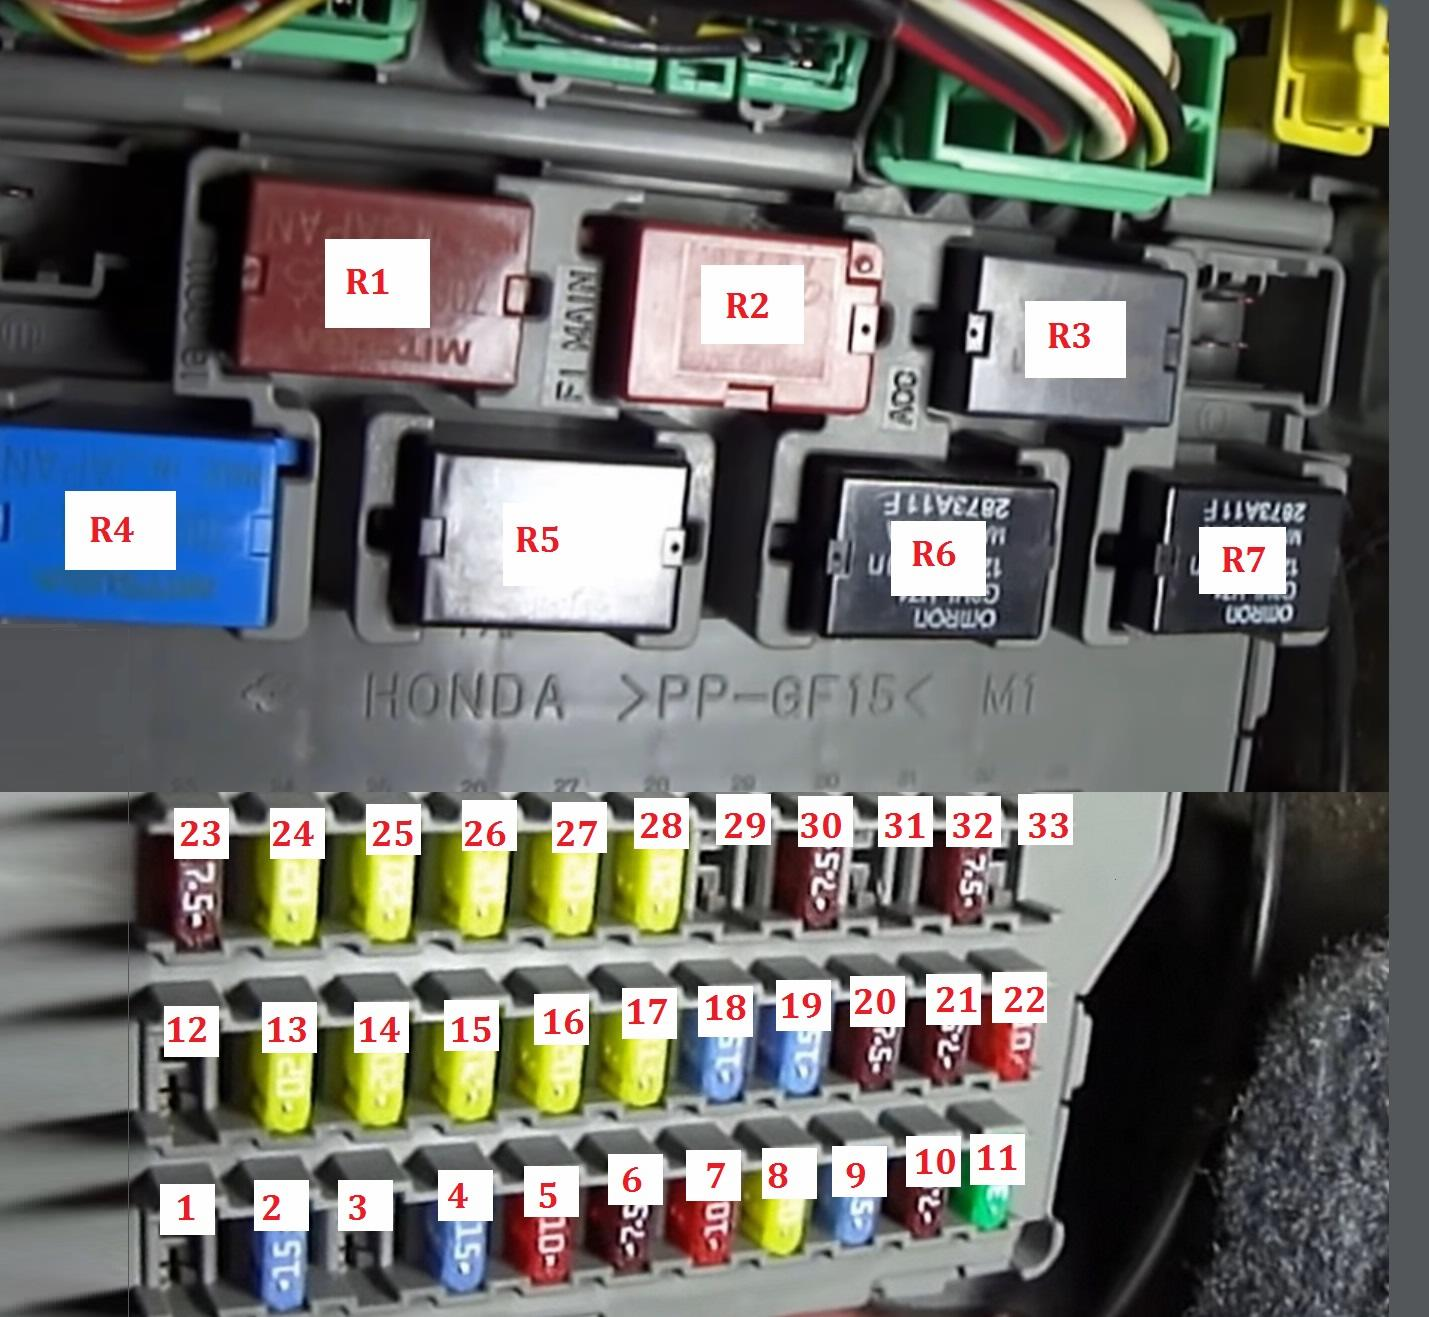 Identifying fuse box. en-accord03-08-blok-salon-2